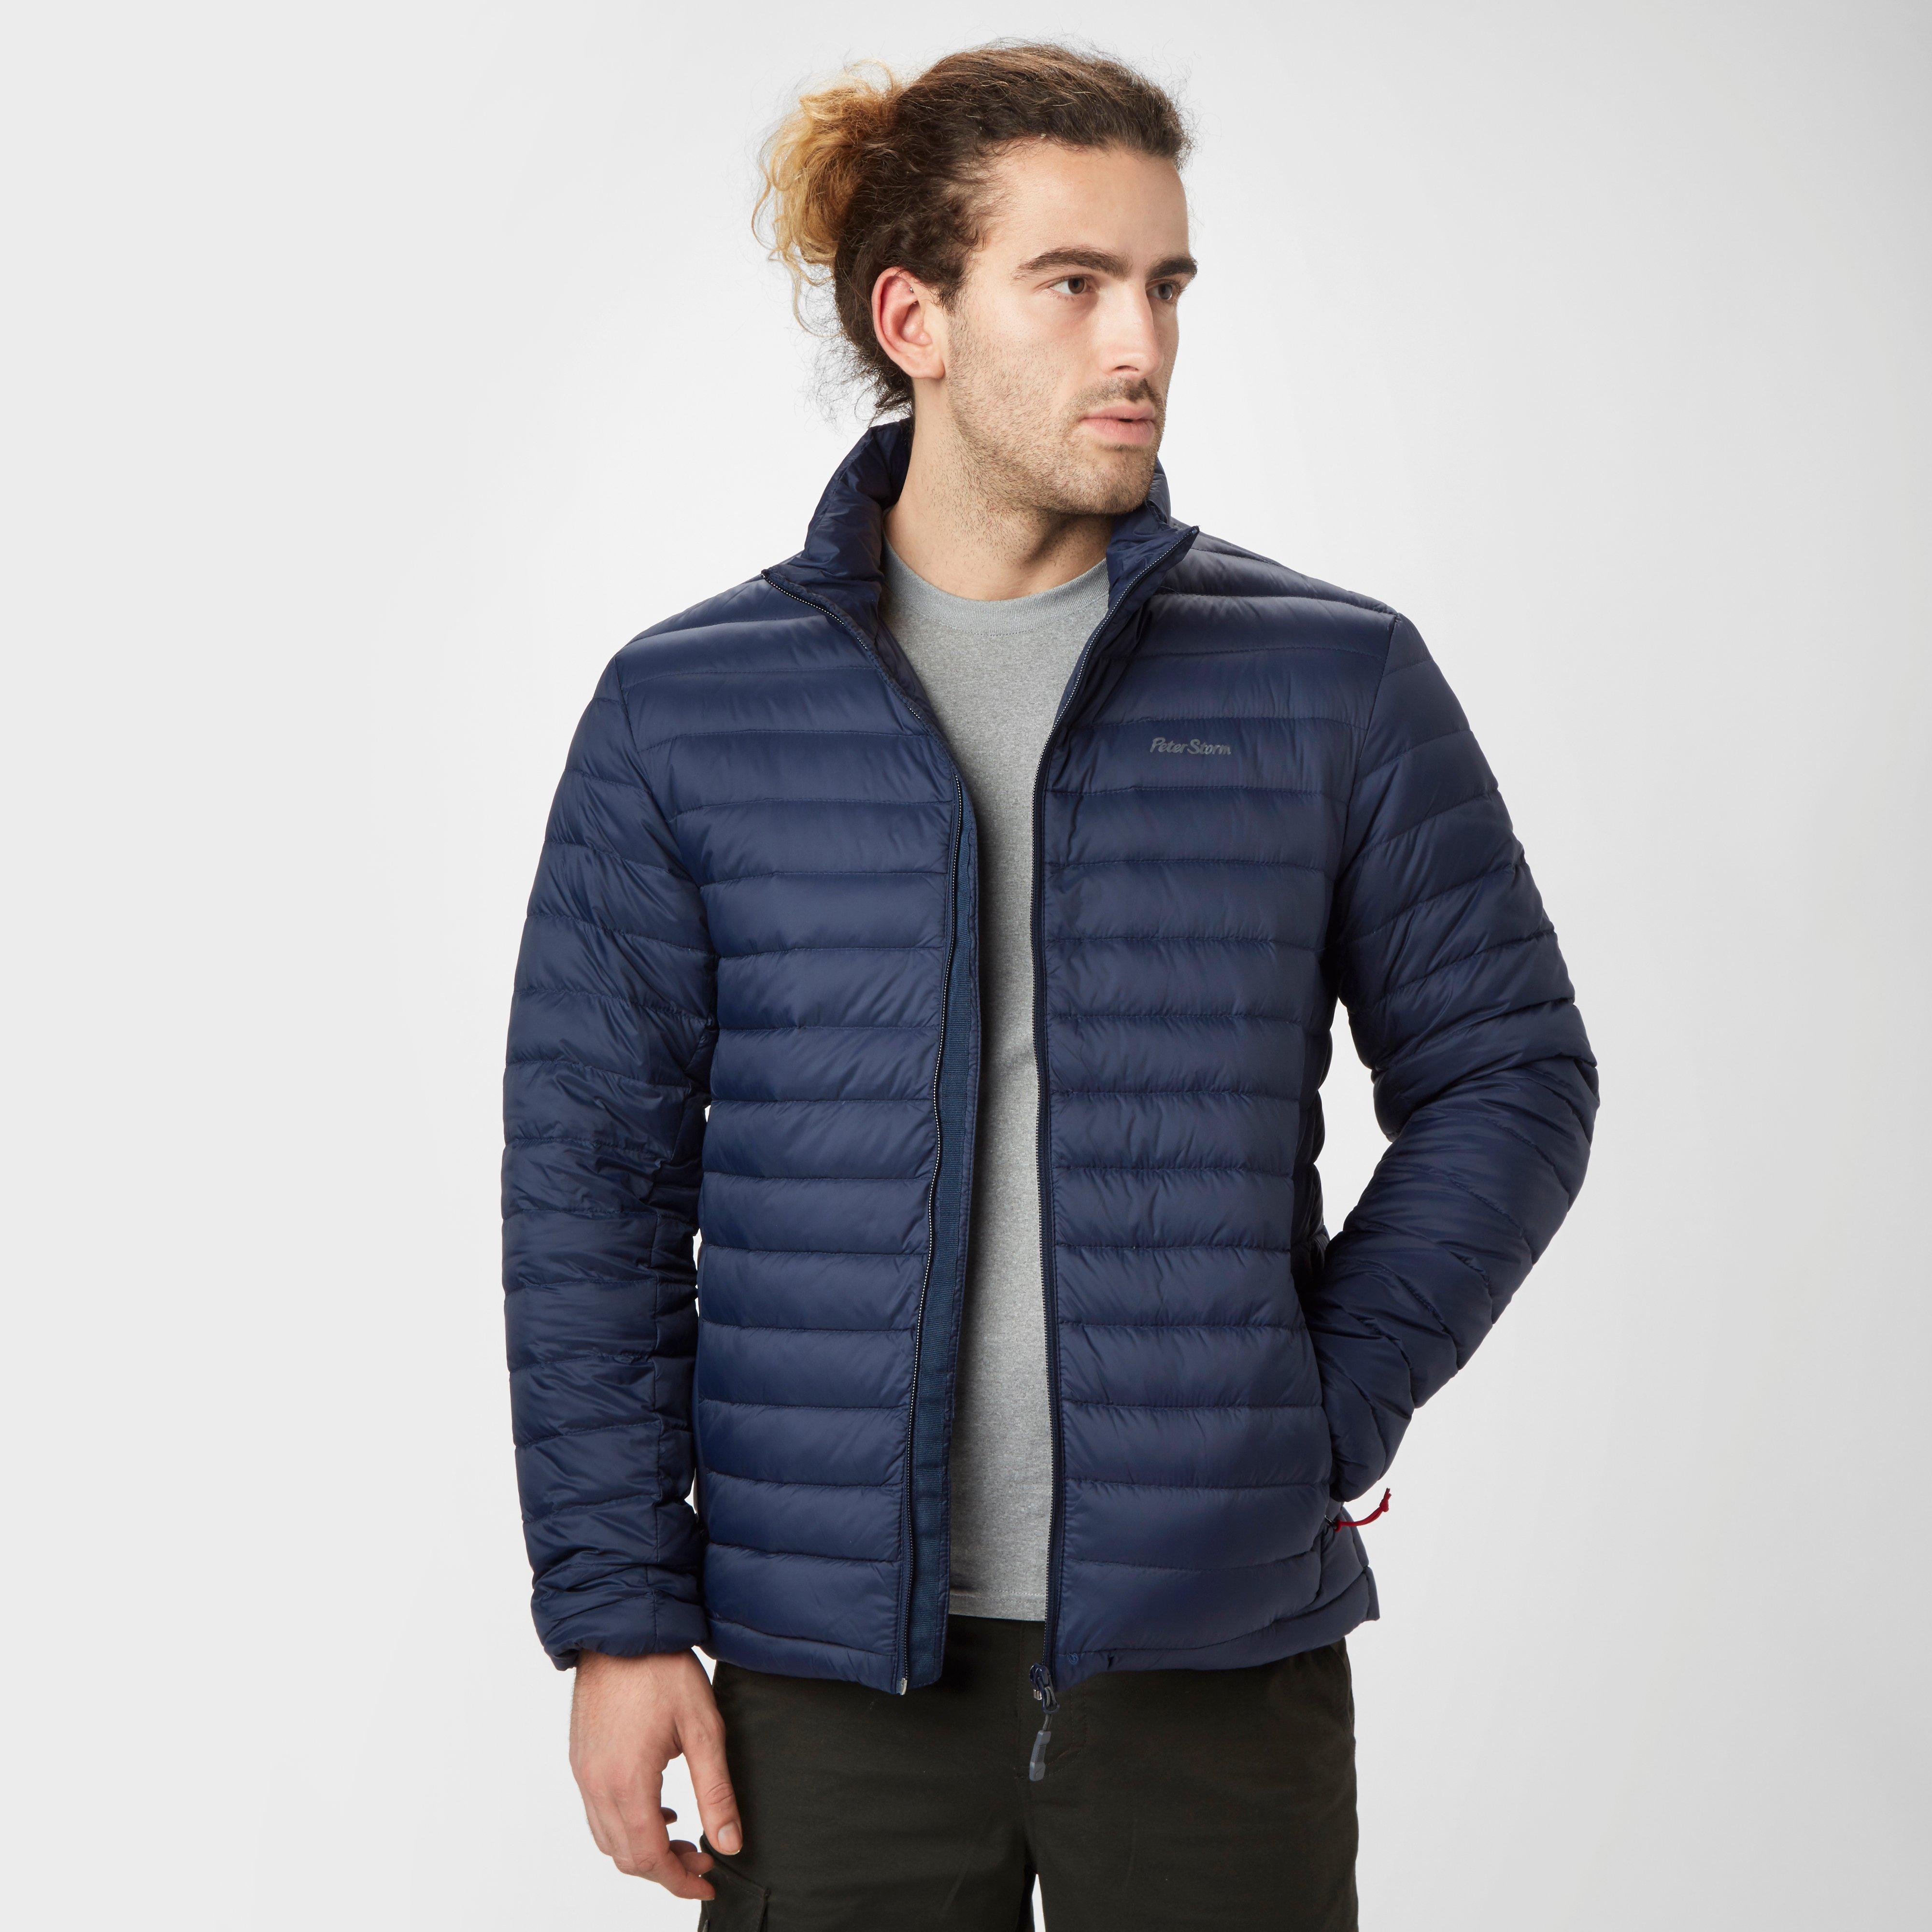 Men's Down Jackets | Insulated & Quilted Jackets | Blacks